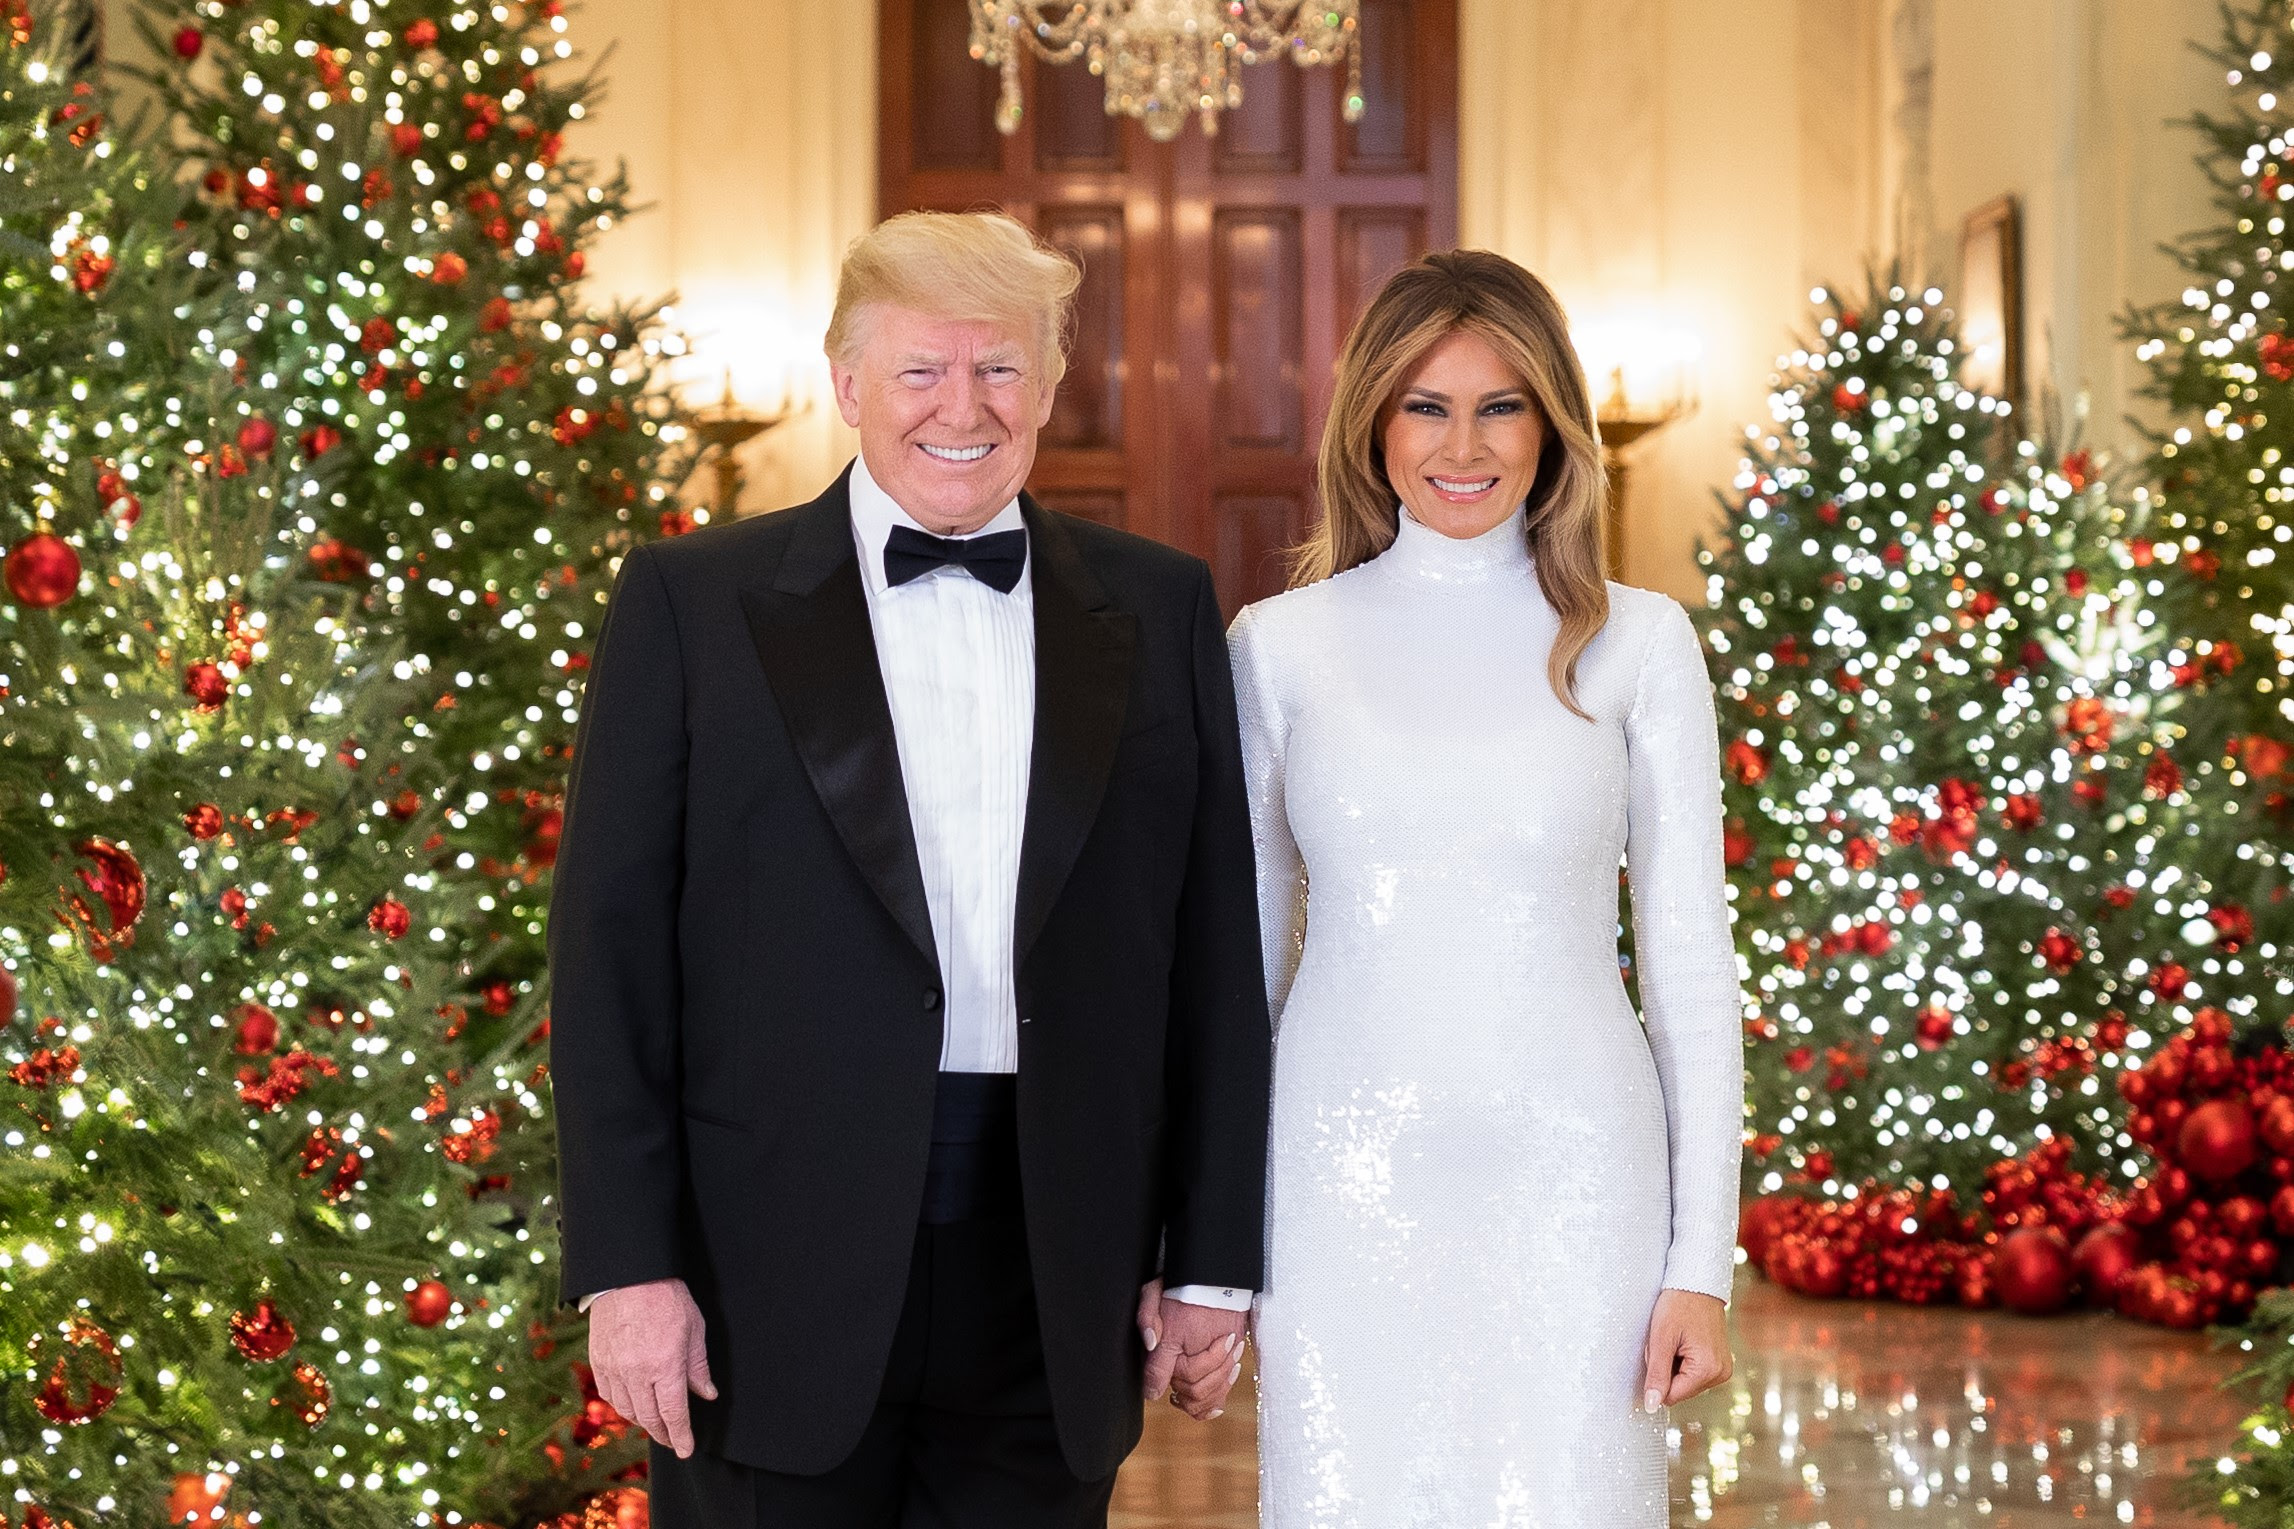 President Donald J. Trump and First Lady Melania Trump are seen in their Official Christmas Portrait on Saturday, December 15, 2018, in the Cross Hall of the White House in Washington, D.C. (Official White House Photo by Andrea Hanks)